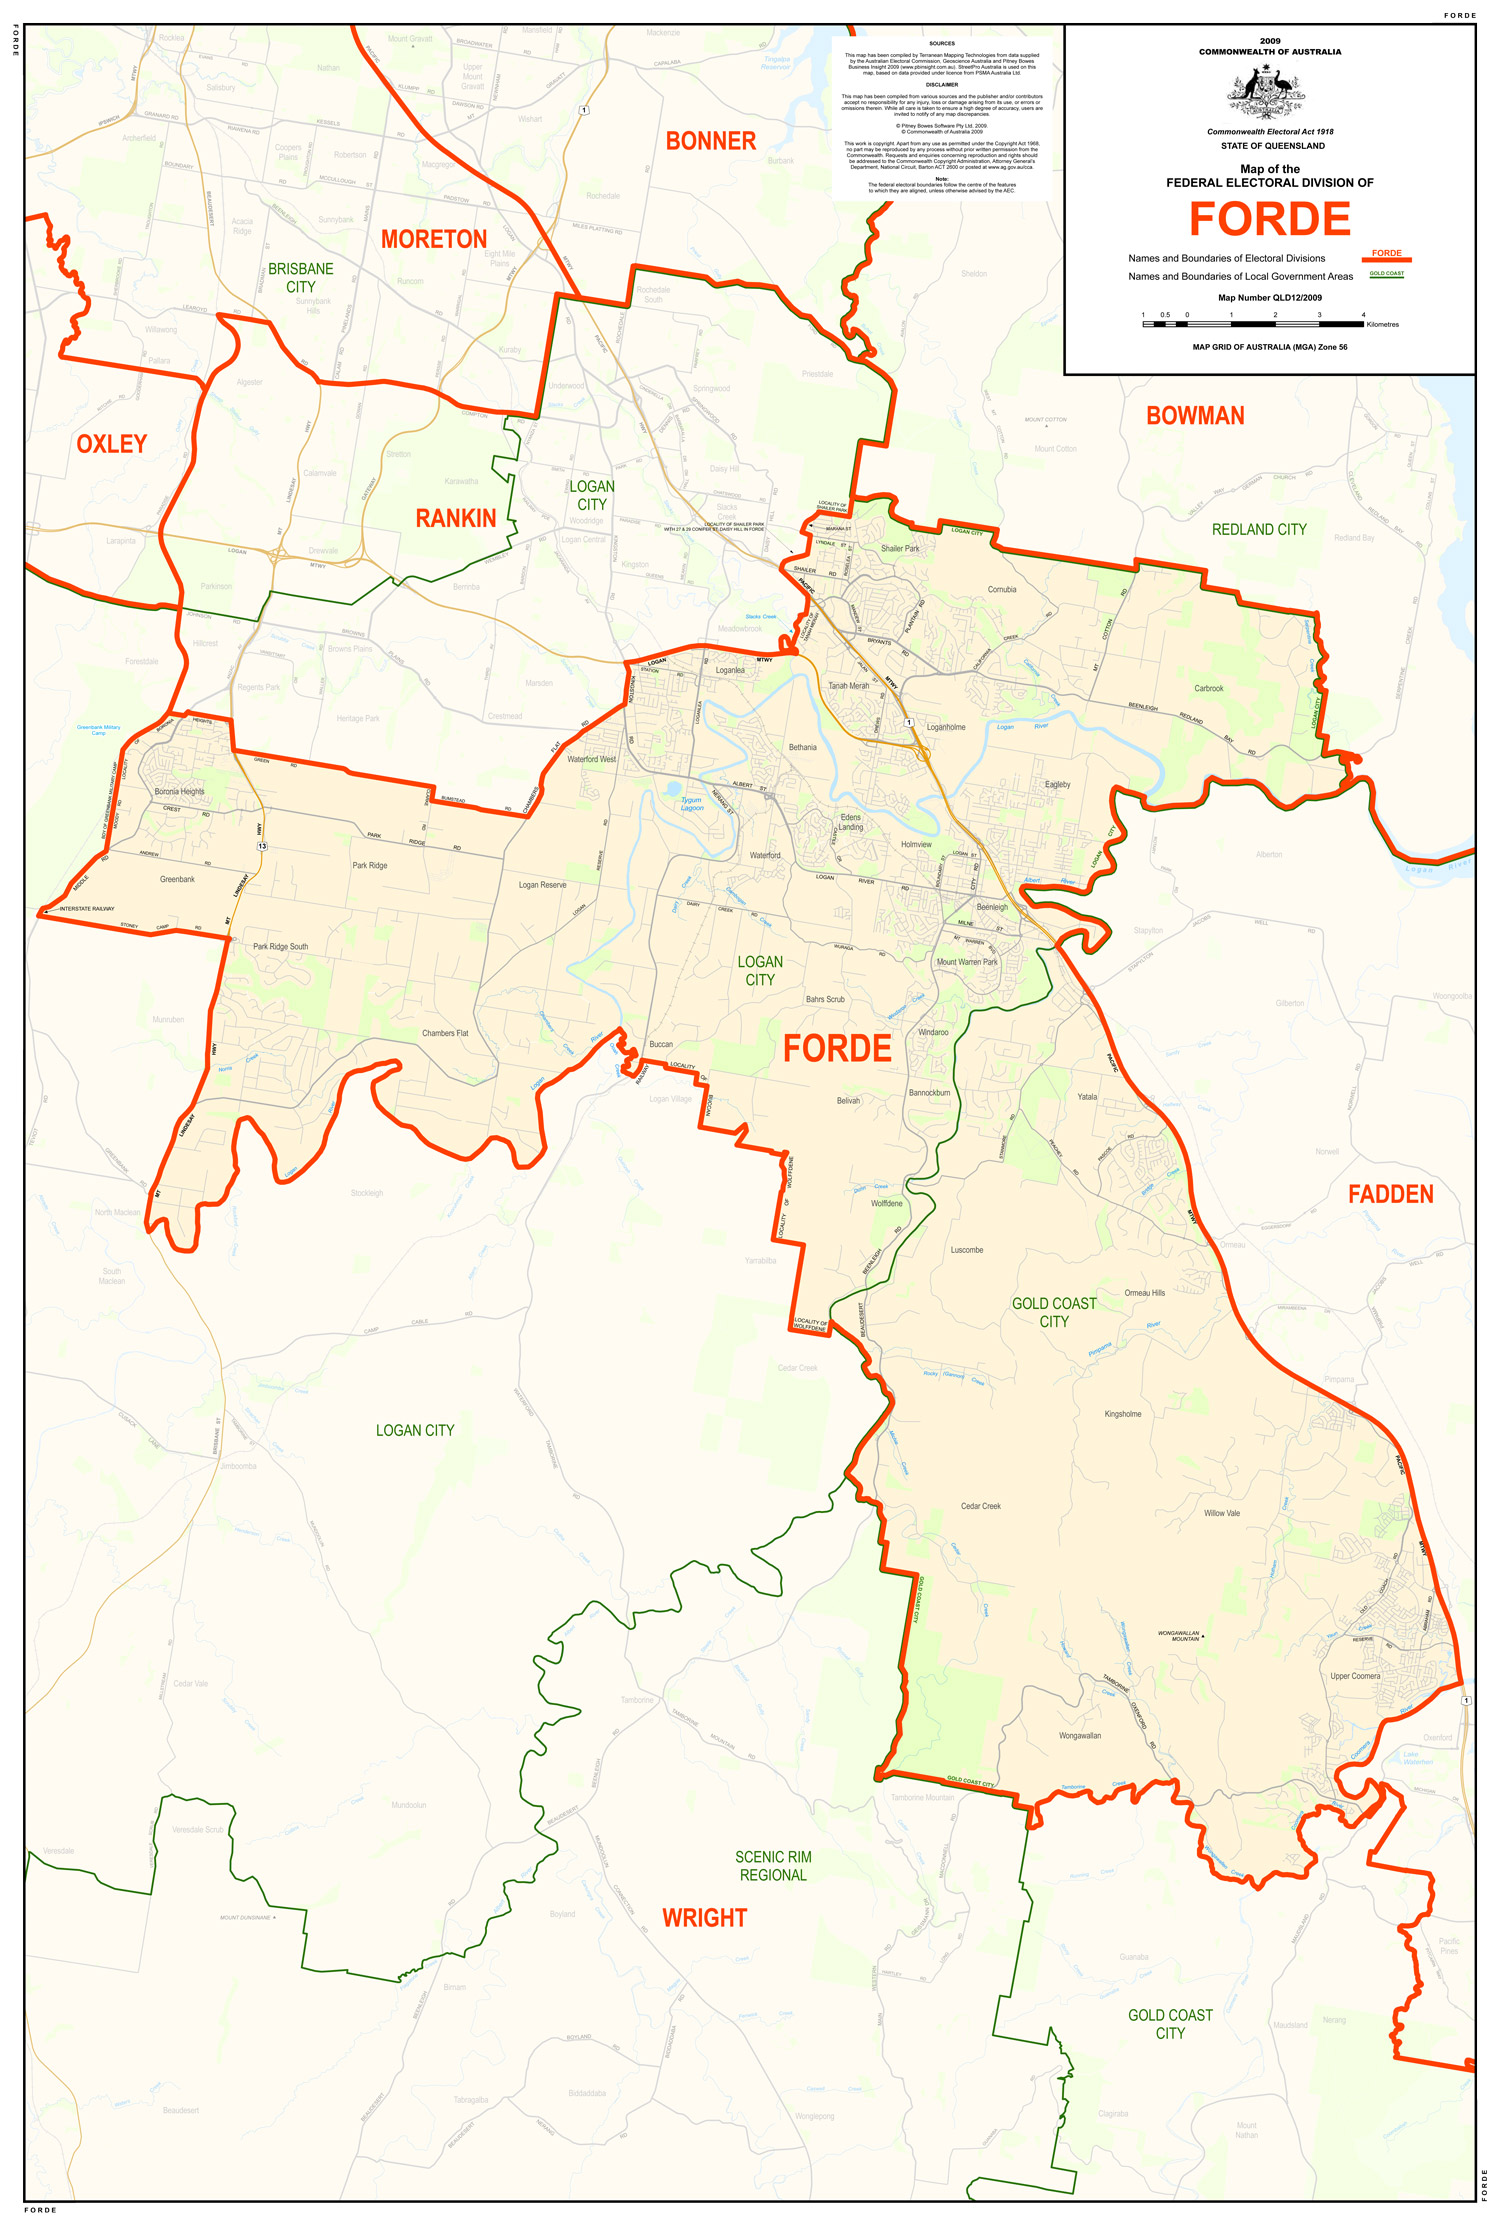 forde-map-2016